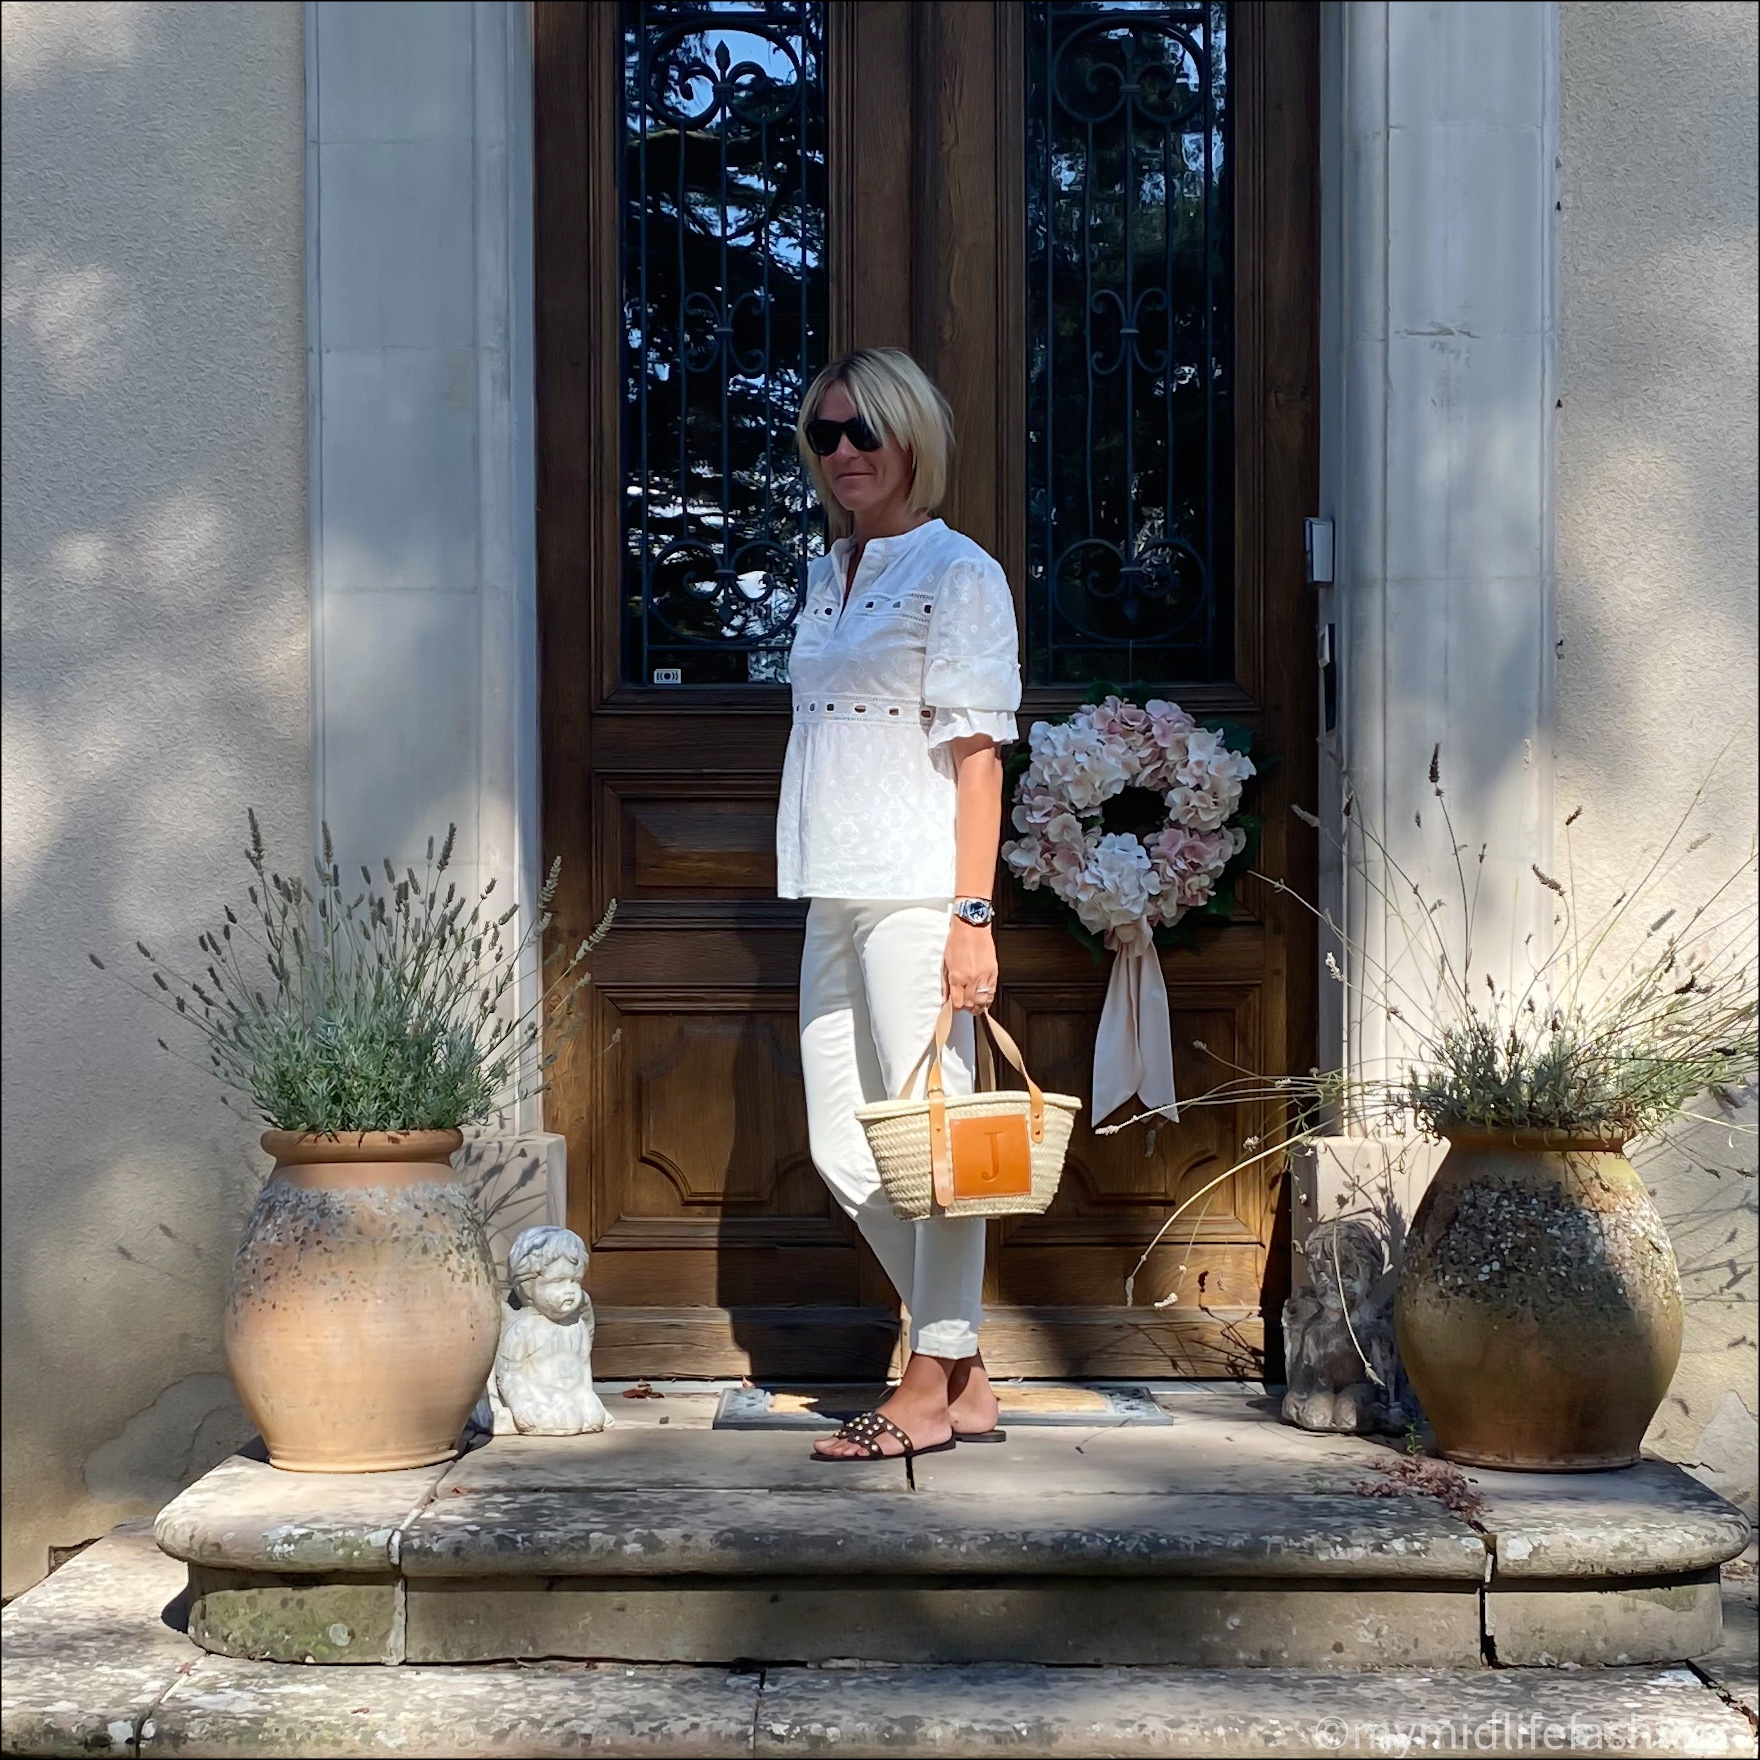 my midlife fashion, boden girlfriend jeans, lada monogrammed basket, zara leather studded sliders, fracomina broderie anglaise blouse